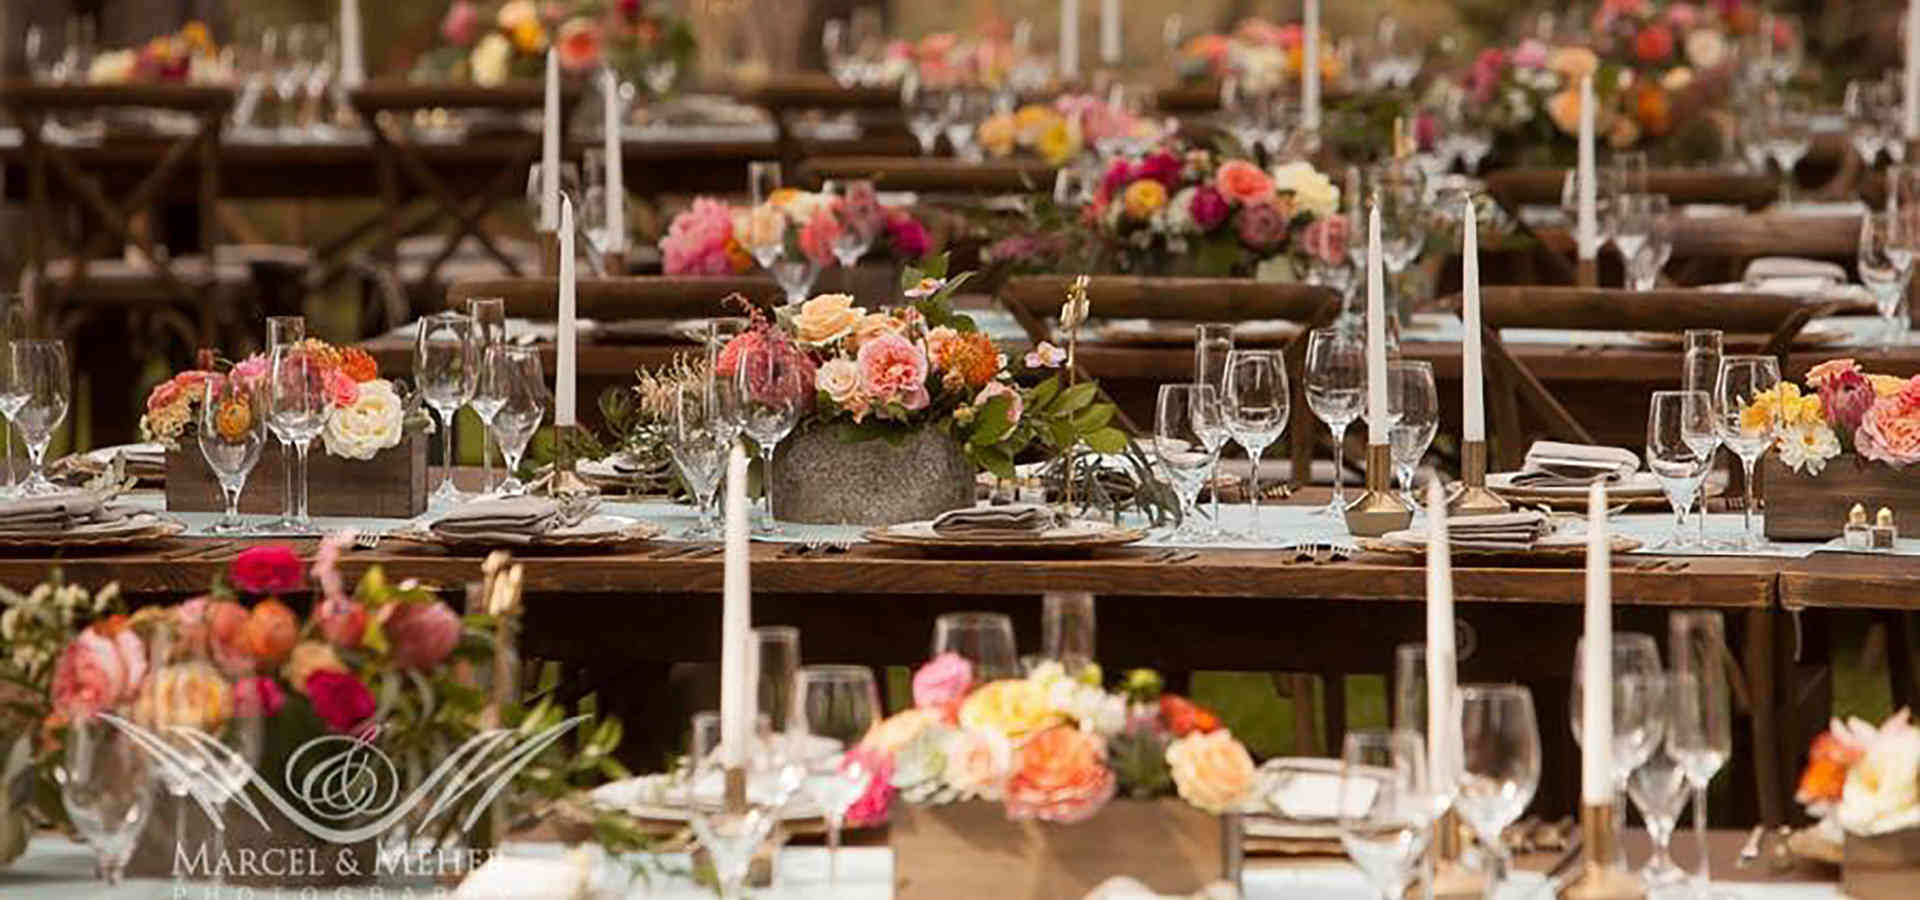 Event Rentals in Monterey